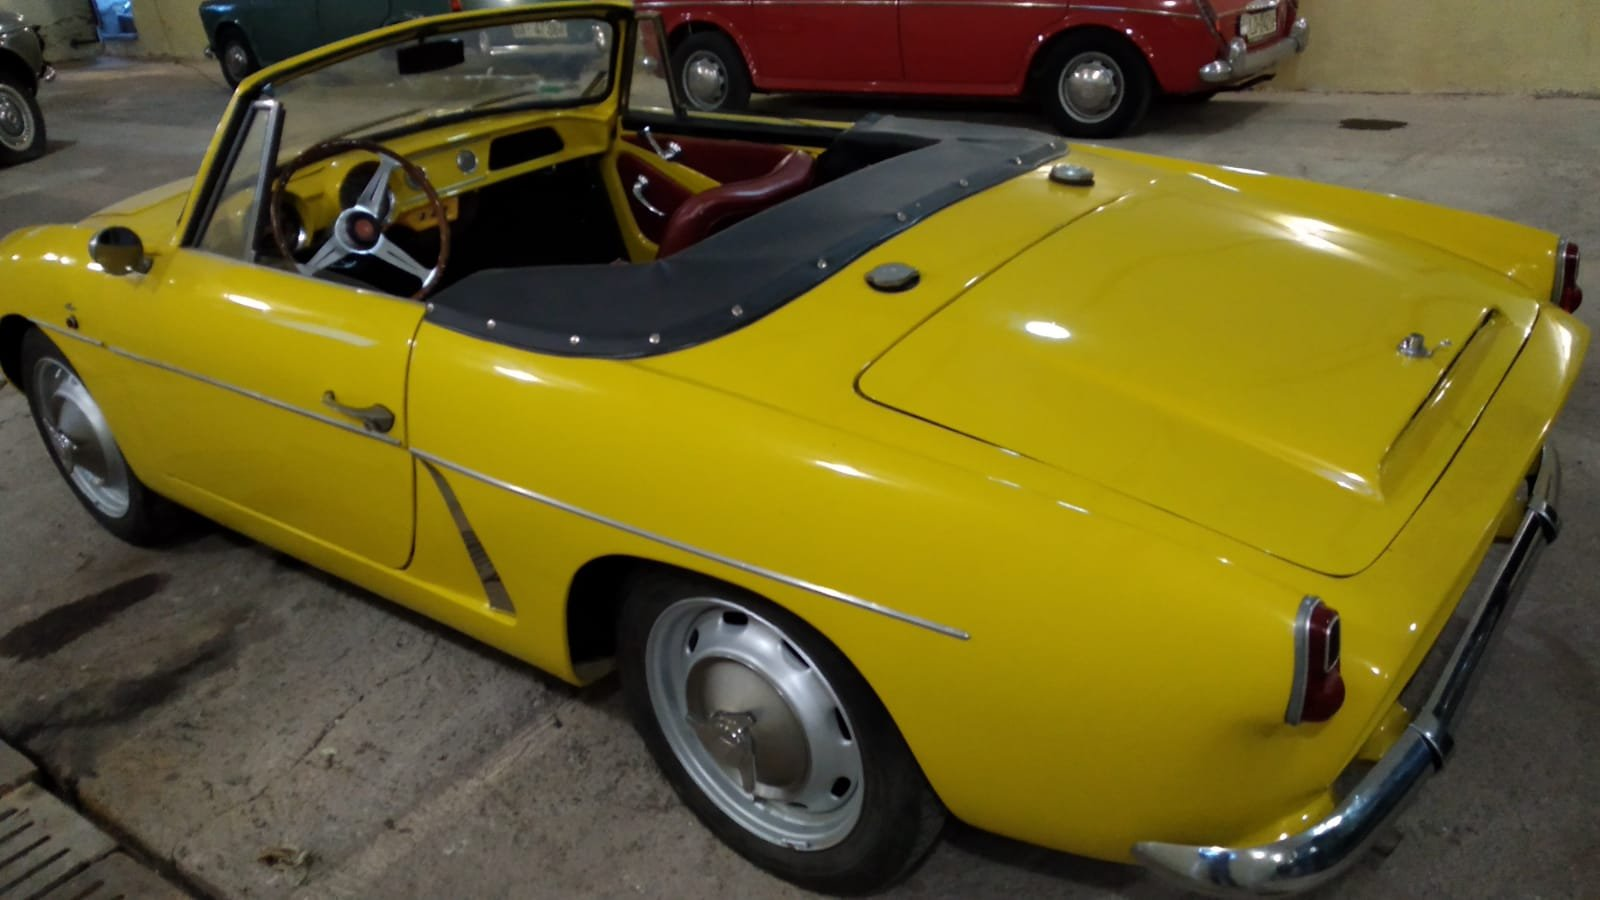 1966 Renault Alpine A108 Cabriolet 850cc.- matching Nr. For Sale (picture 2 of 2)